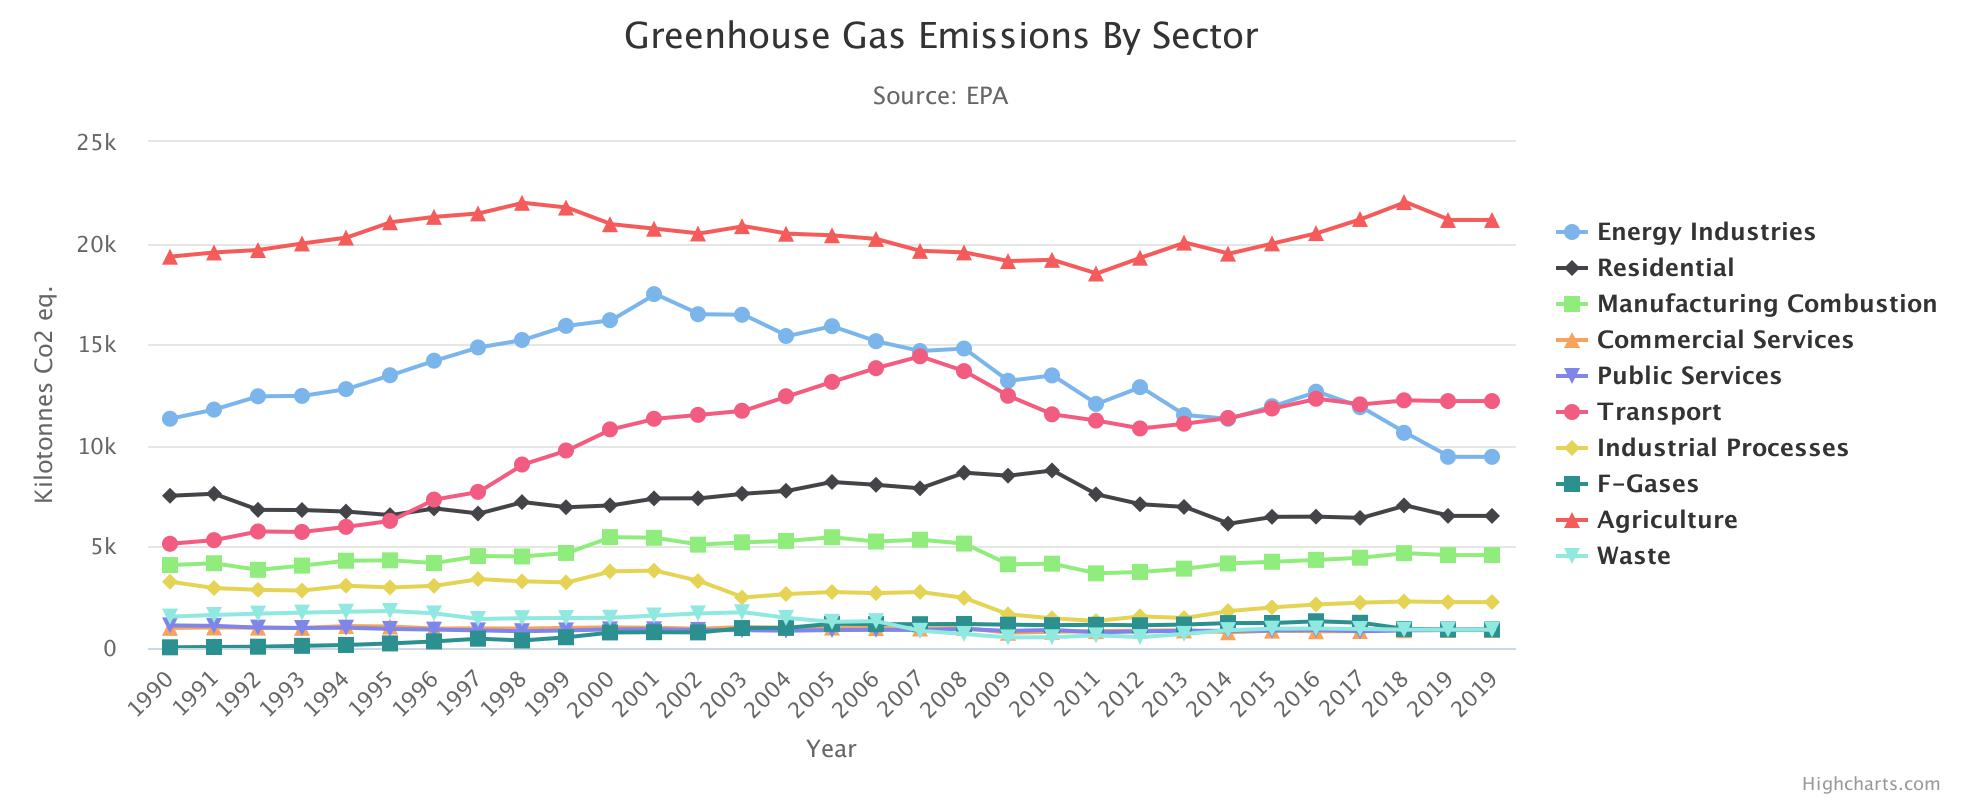 Greenhouse Gas Emissions By Sector HighChart Image